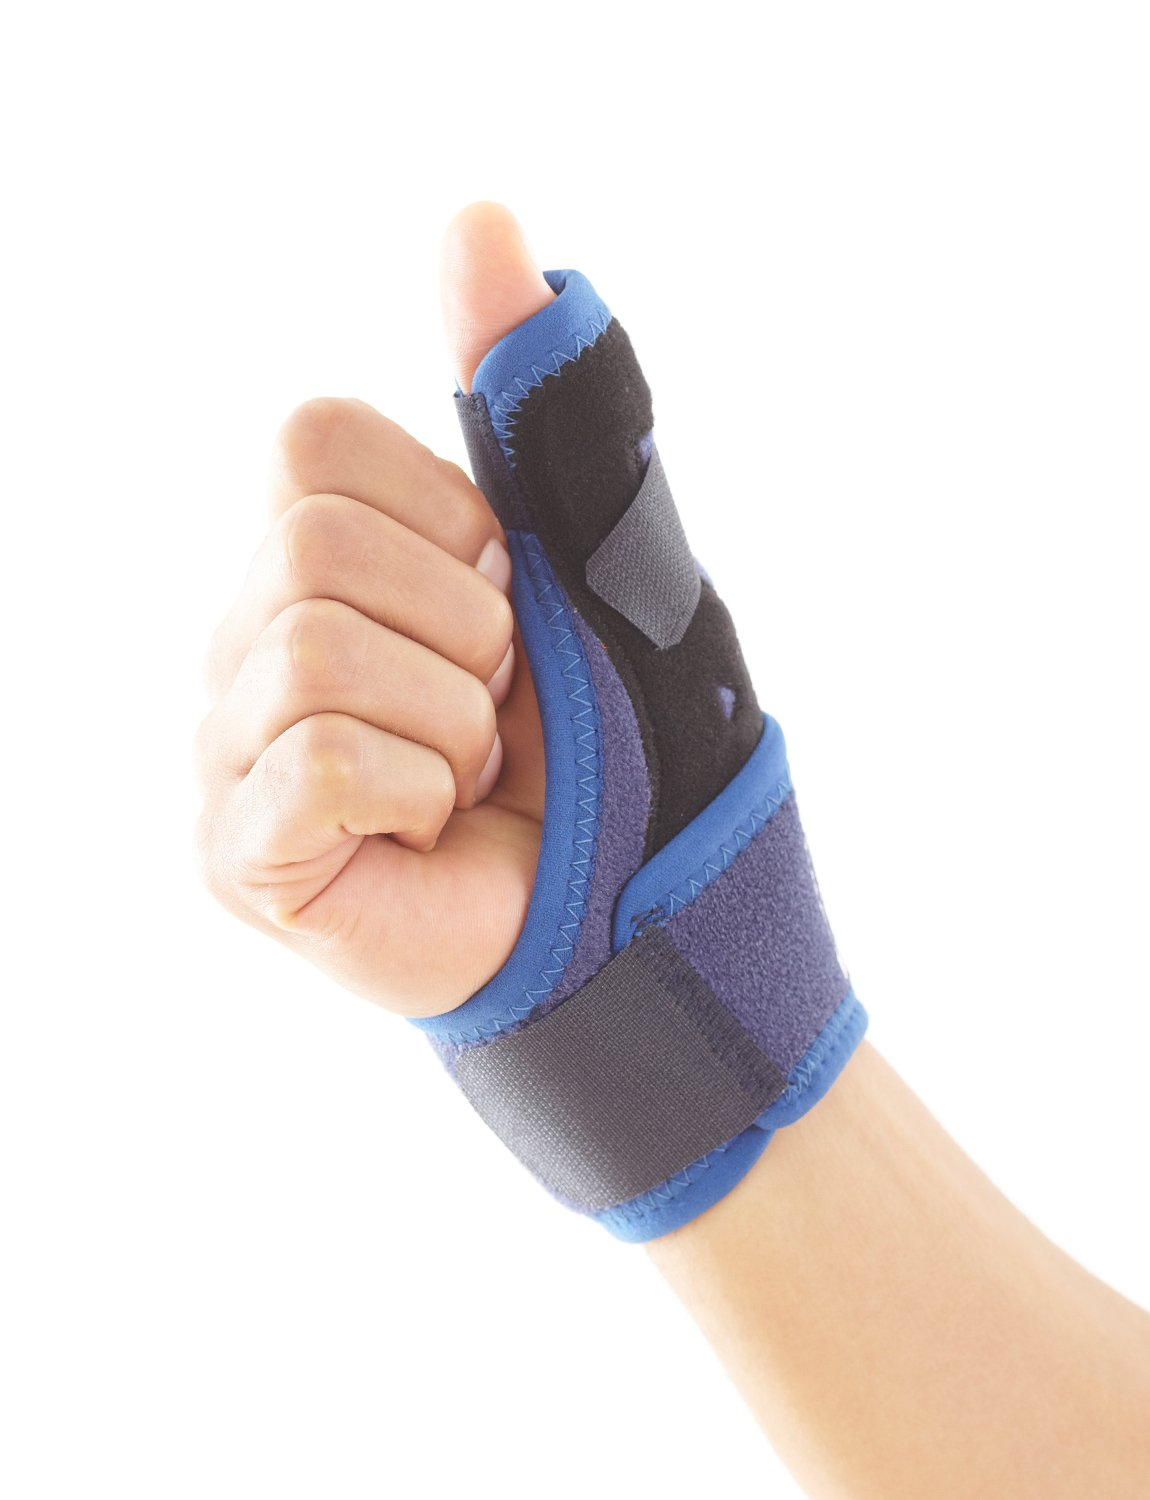 Neo G Easy-Fit Thumb Brace - Spica Support for Pain, Trigger Thumb, Carpal Tunnel Syndrome, Arthritis, Sports, Thumb Injuries – Adjustable Compression – Class 1 Medical Grade – Unisex - Blue: Industrial & Scientific